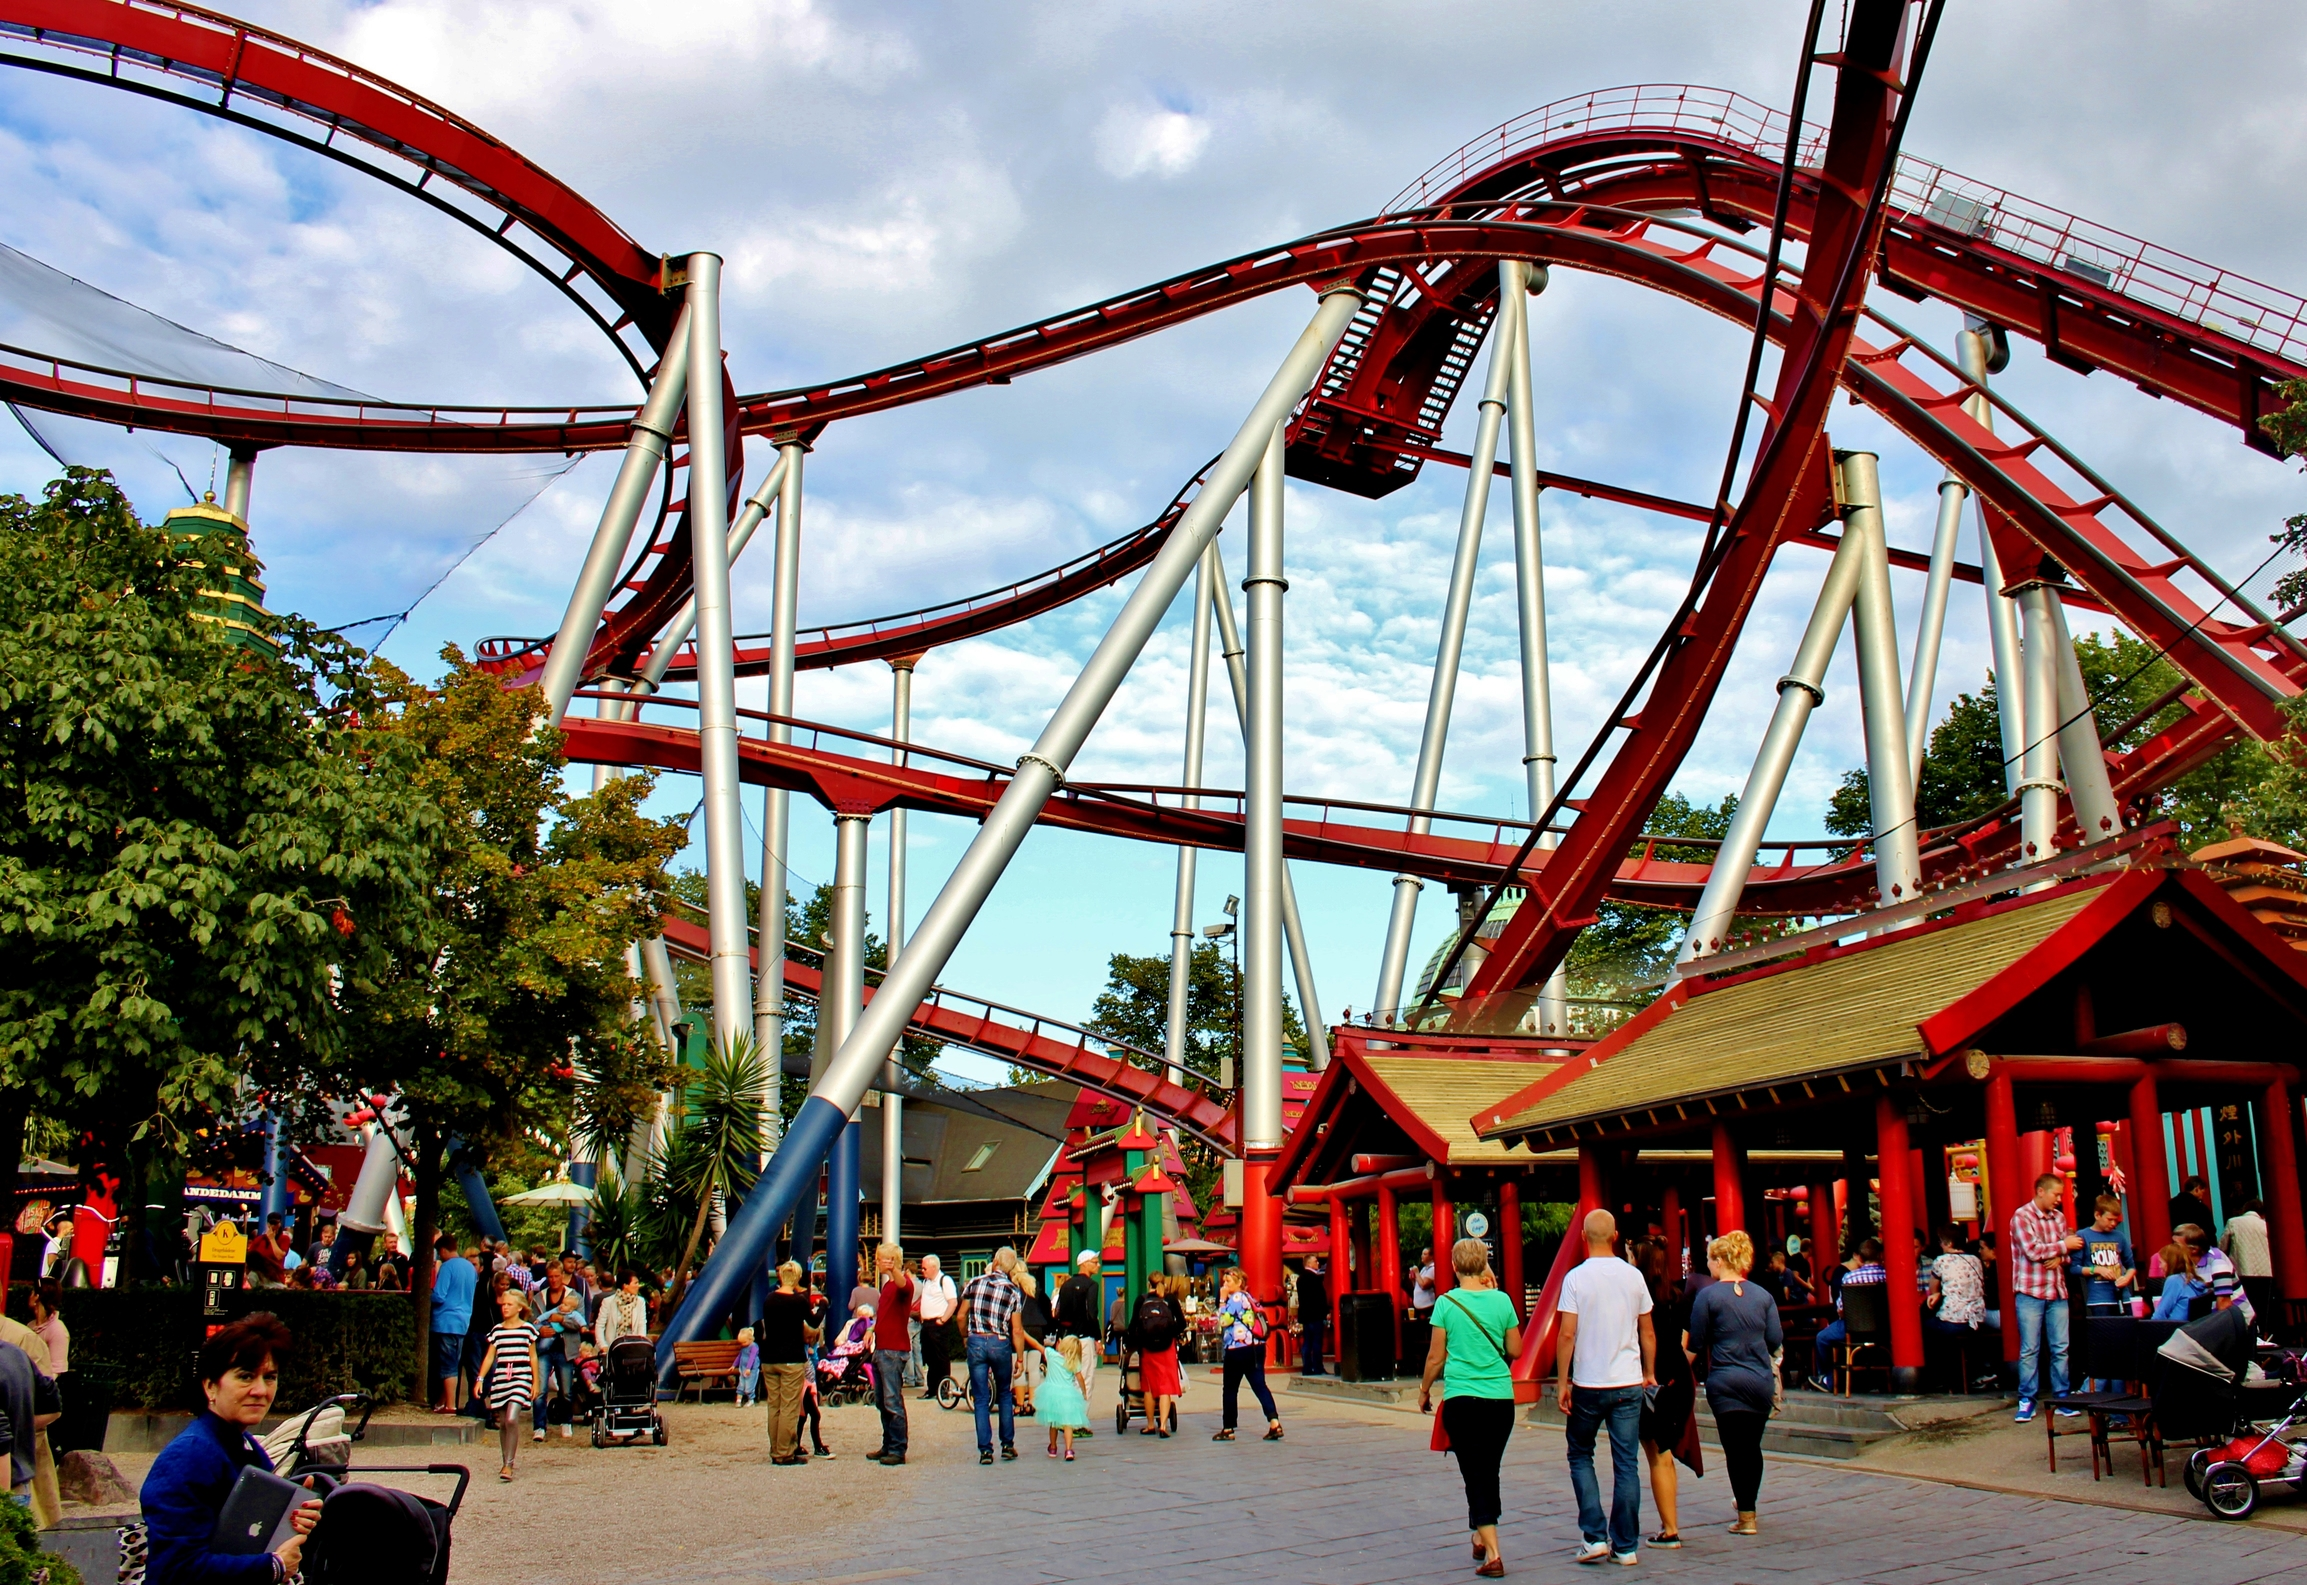 The Daemon roller coaster in Tivoli